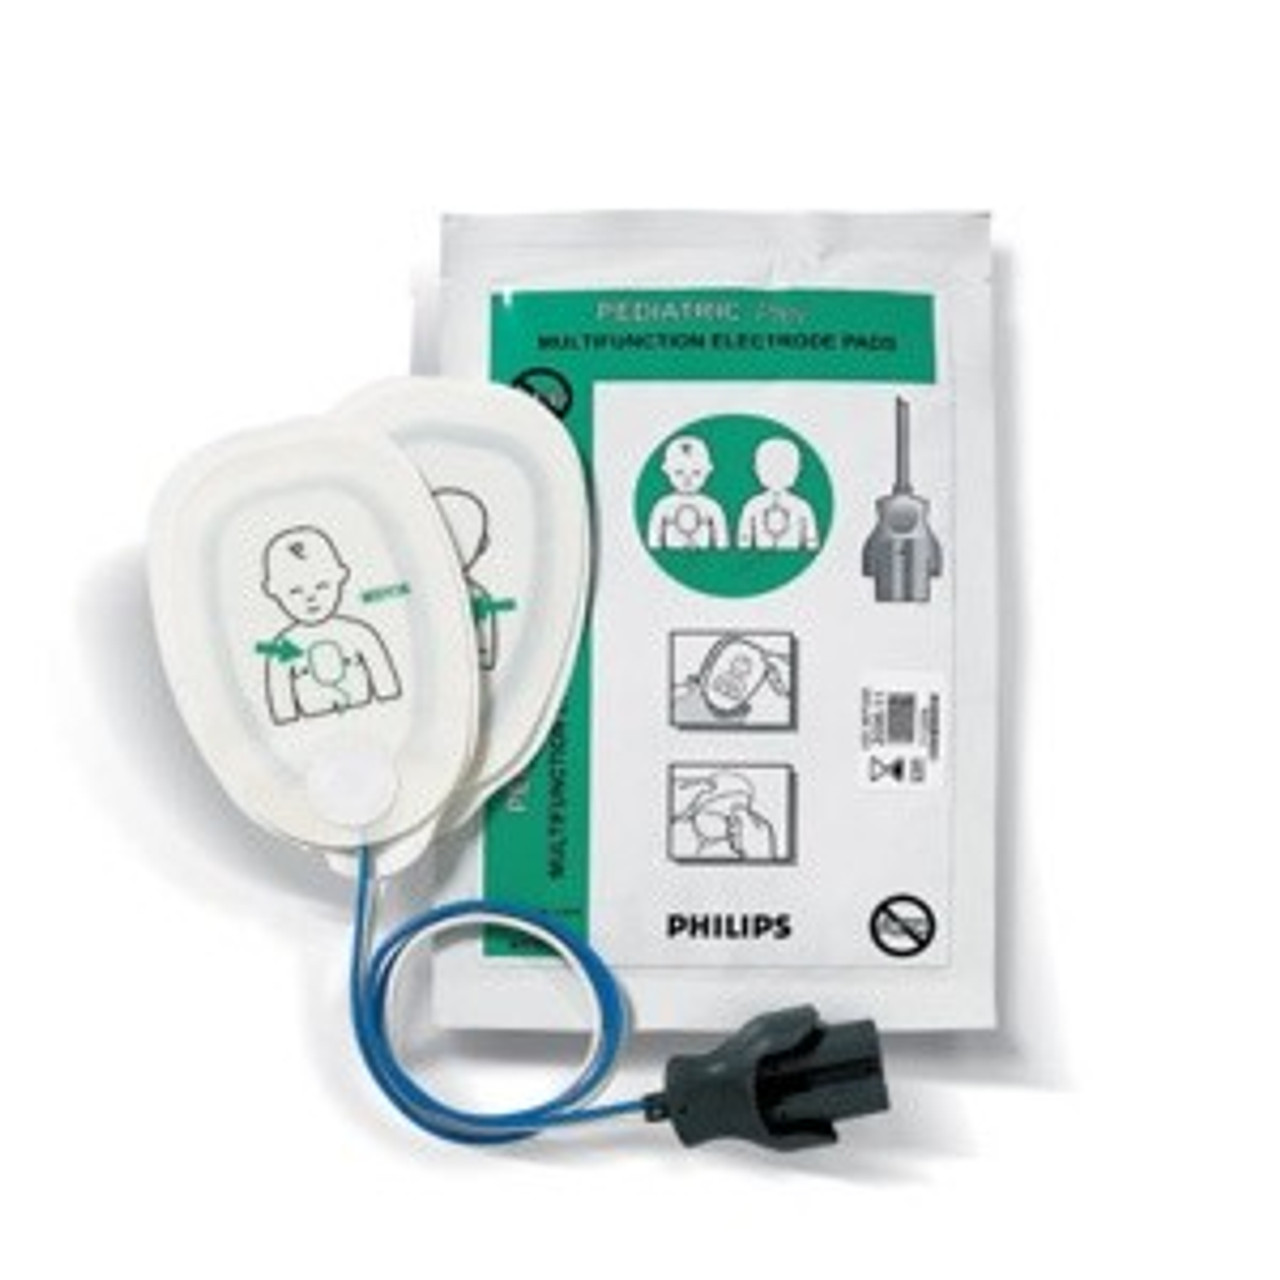 Philips Pediatric Defibrillation Pads M3717A